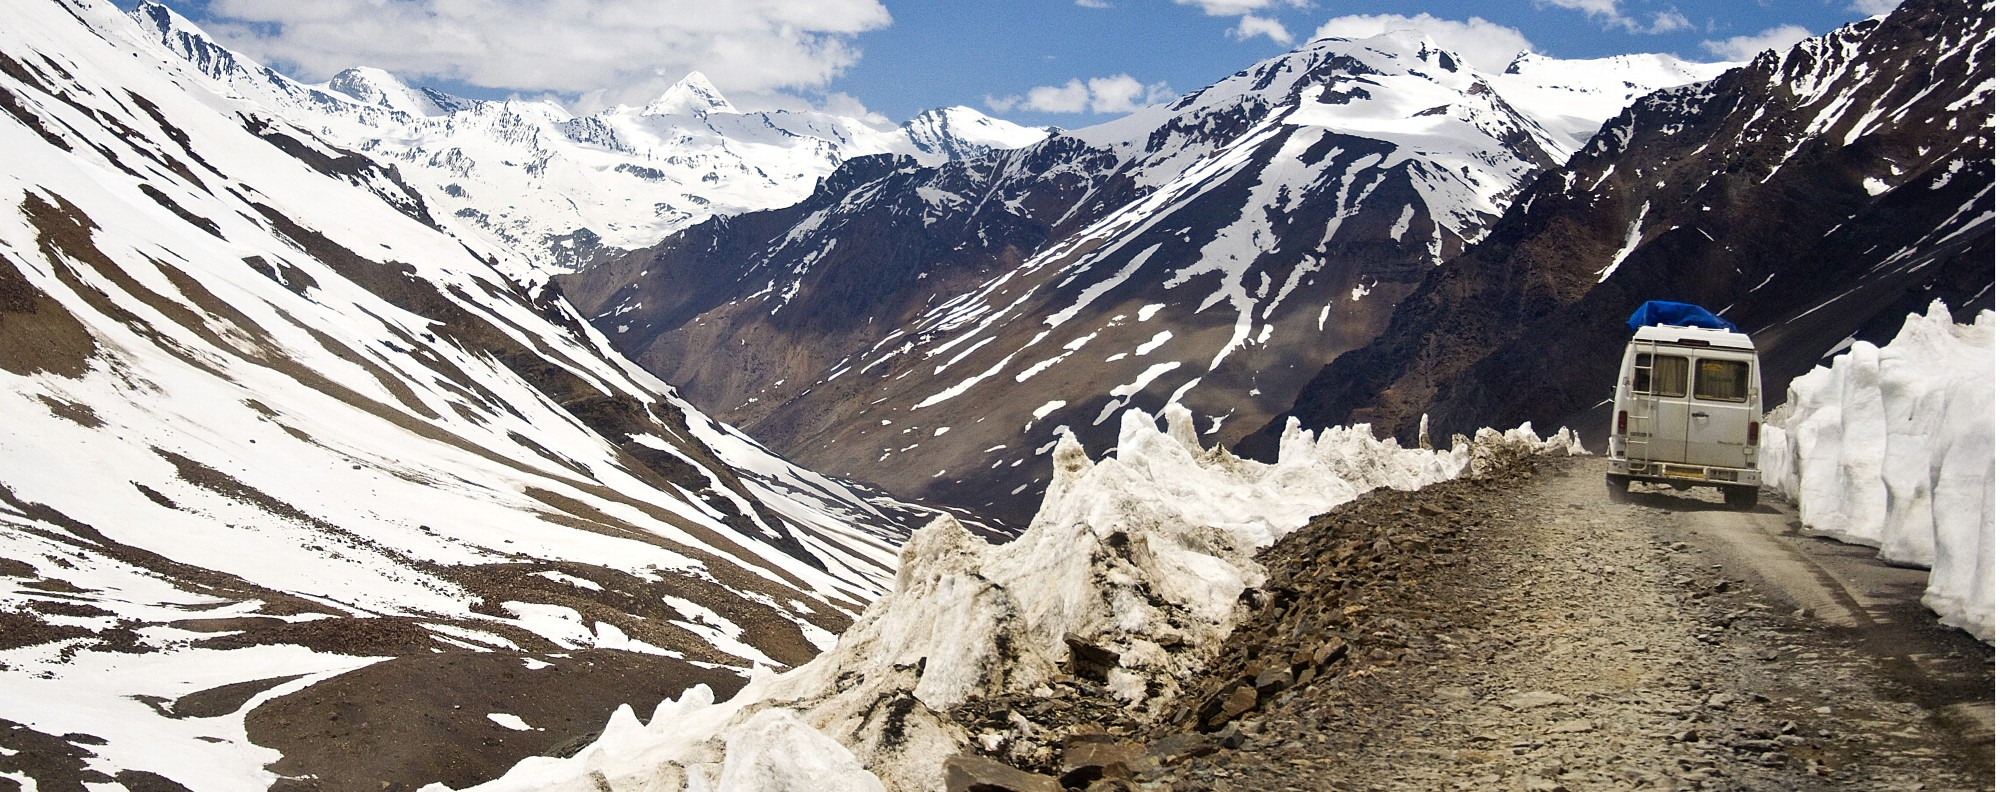 Snow-covered peaks of the Rohtang Pass. Picture: Tim Pile